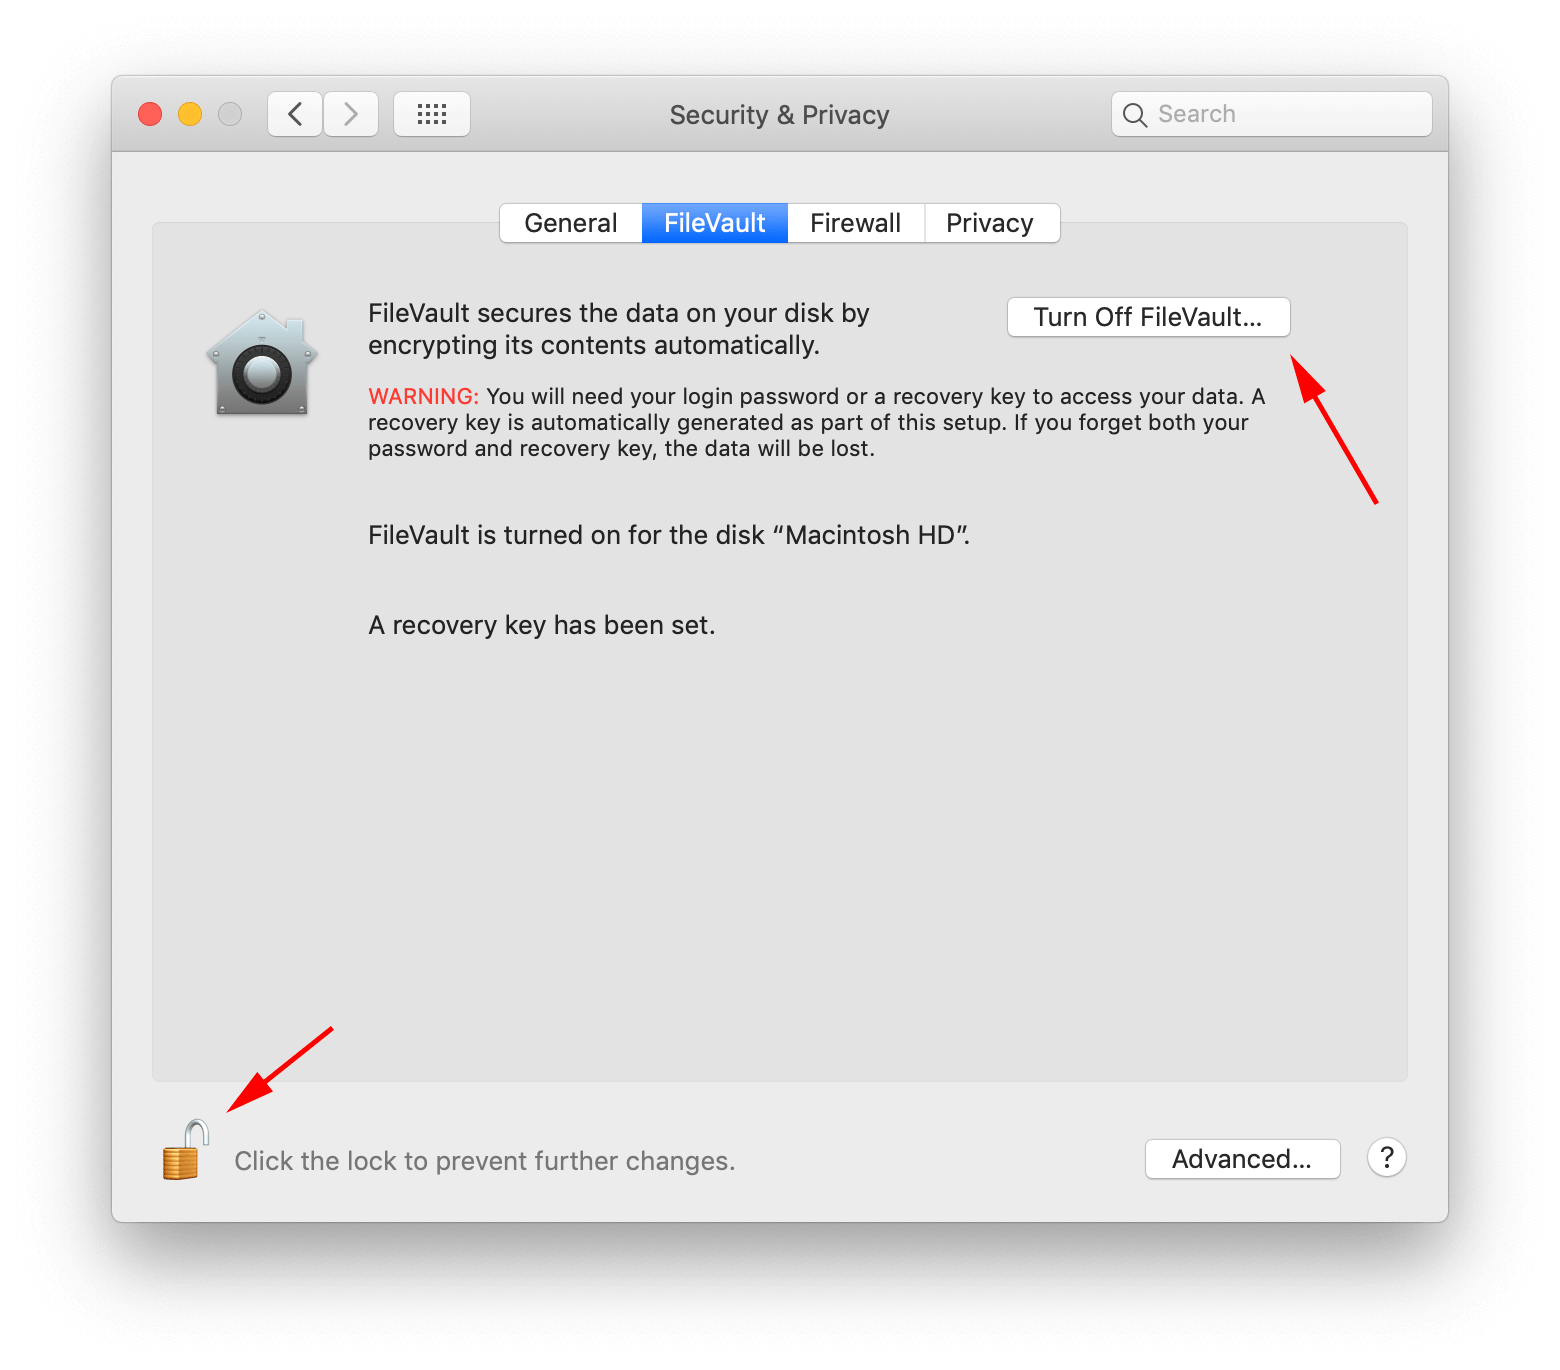 How to turn off FileVault